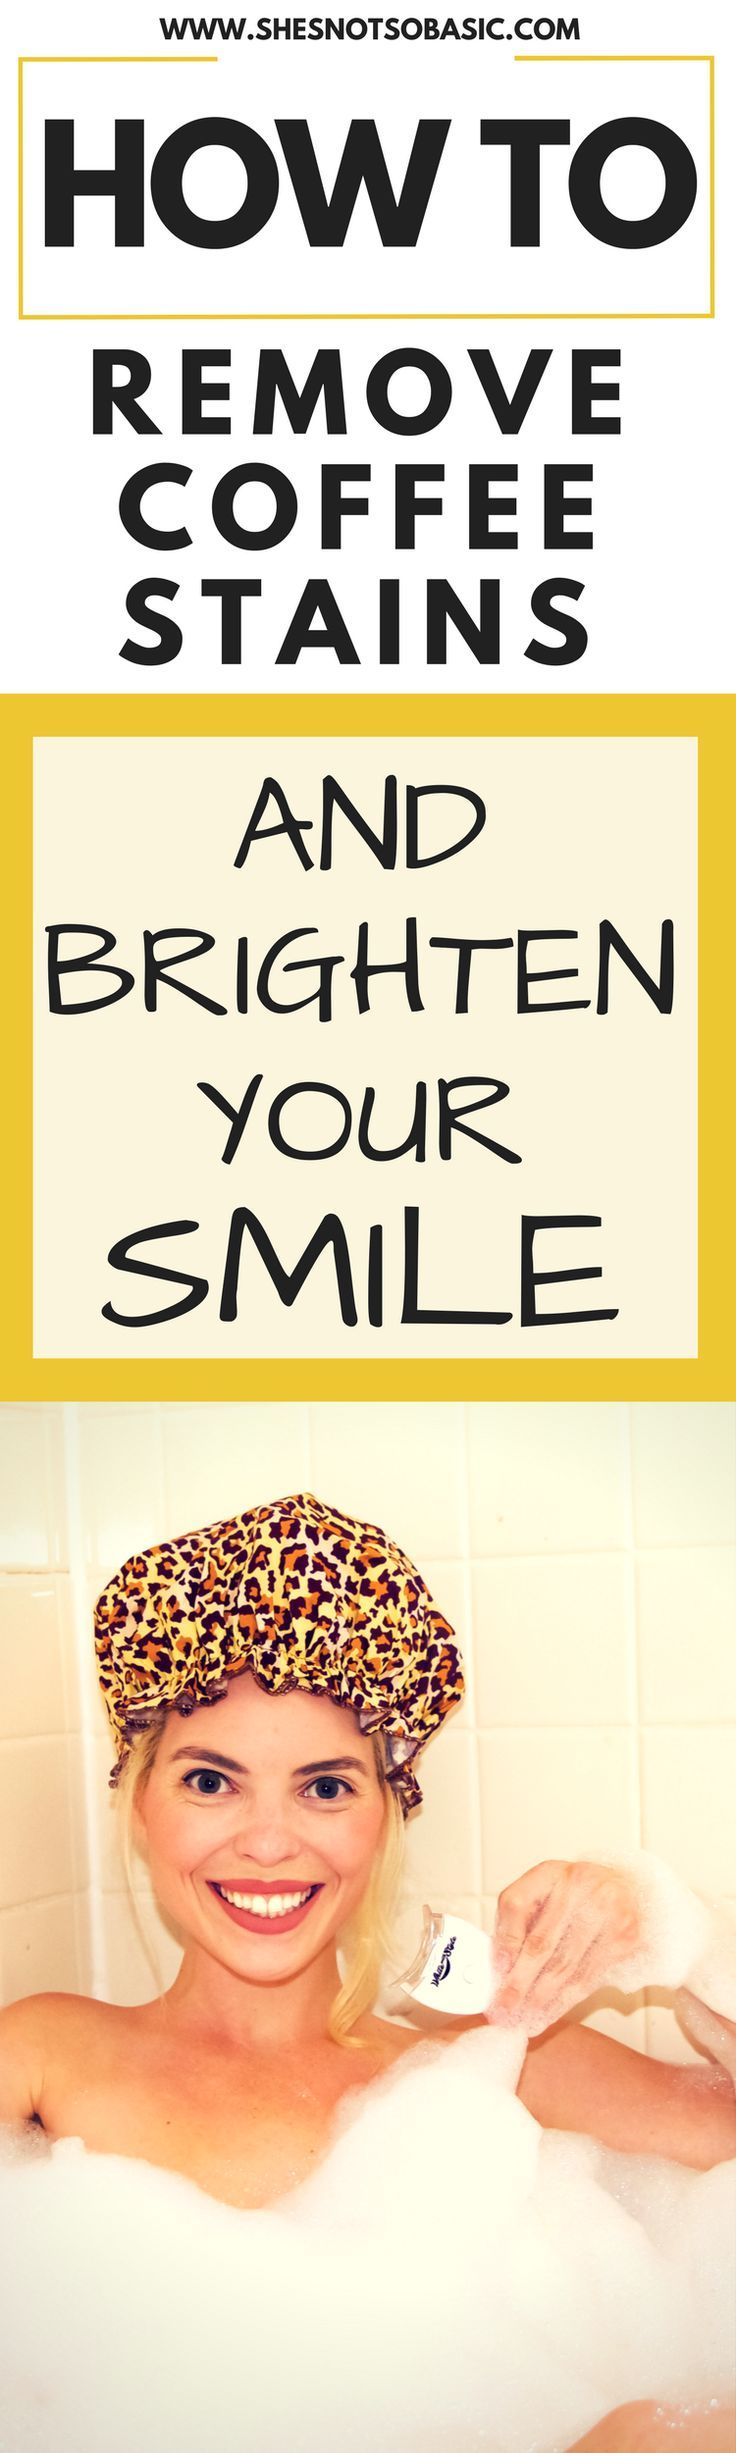 whiten teeth, whitening teeth, whiten teeth in one day, white teeth, white teeth fast, white teeth overnight, how to whiten your teeth, how to whiten teeth, remove coffee stains from teeth